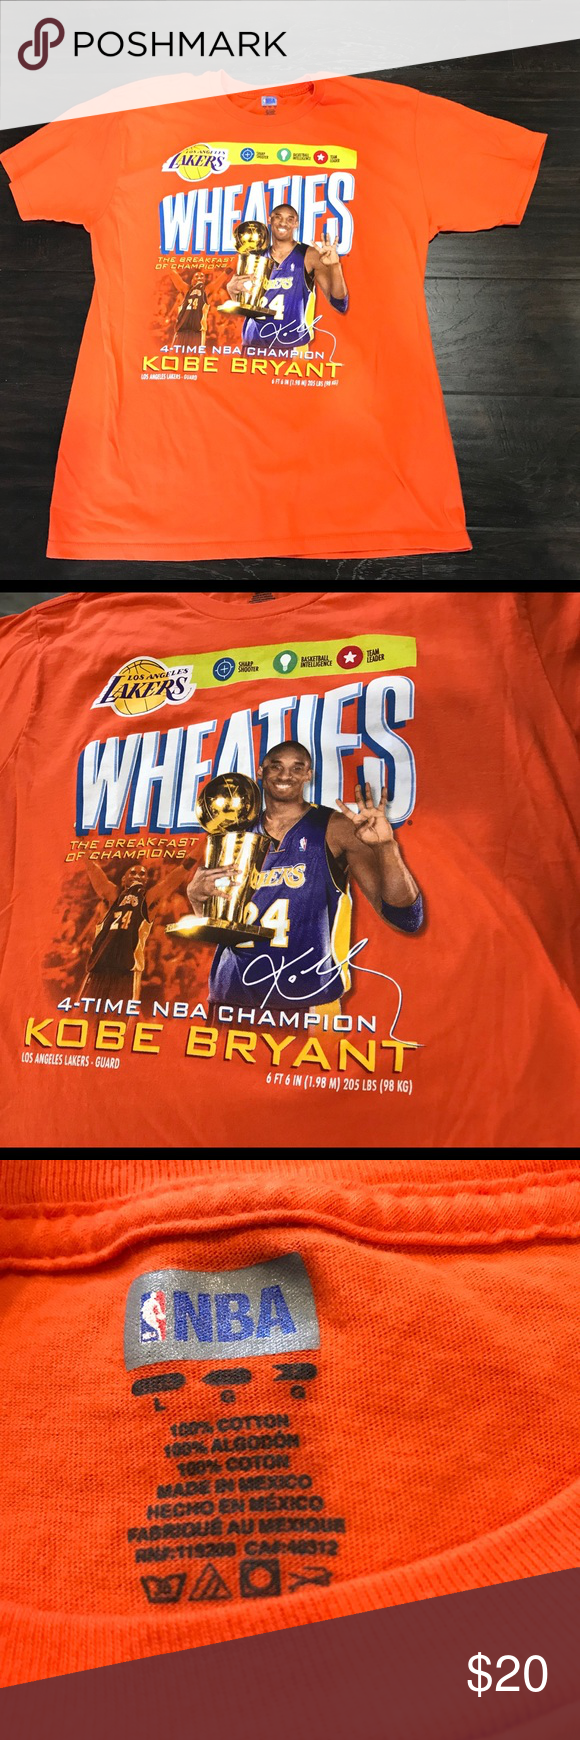 Kobe Bryant Wheaties shirt Known as one of the greatest